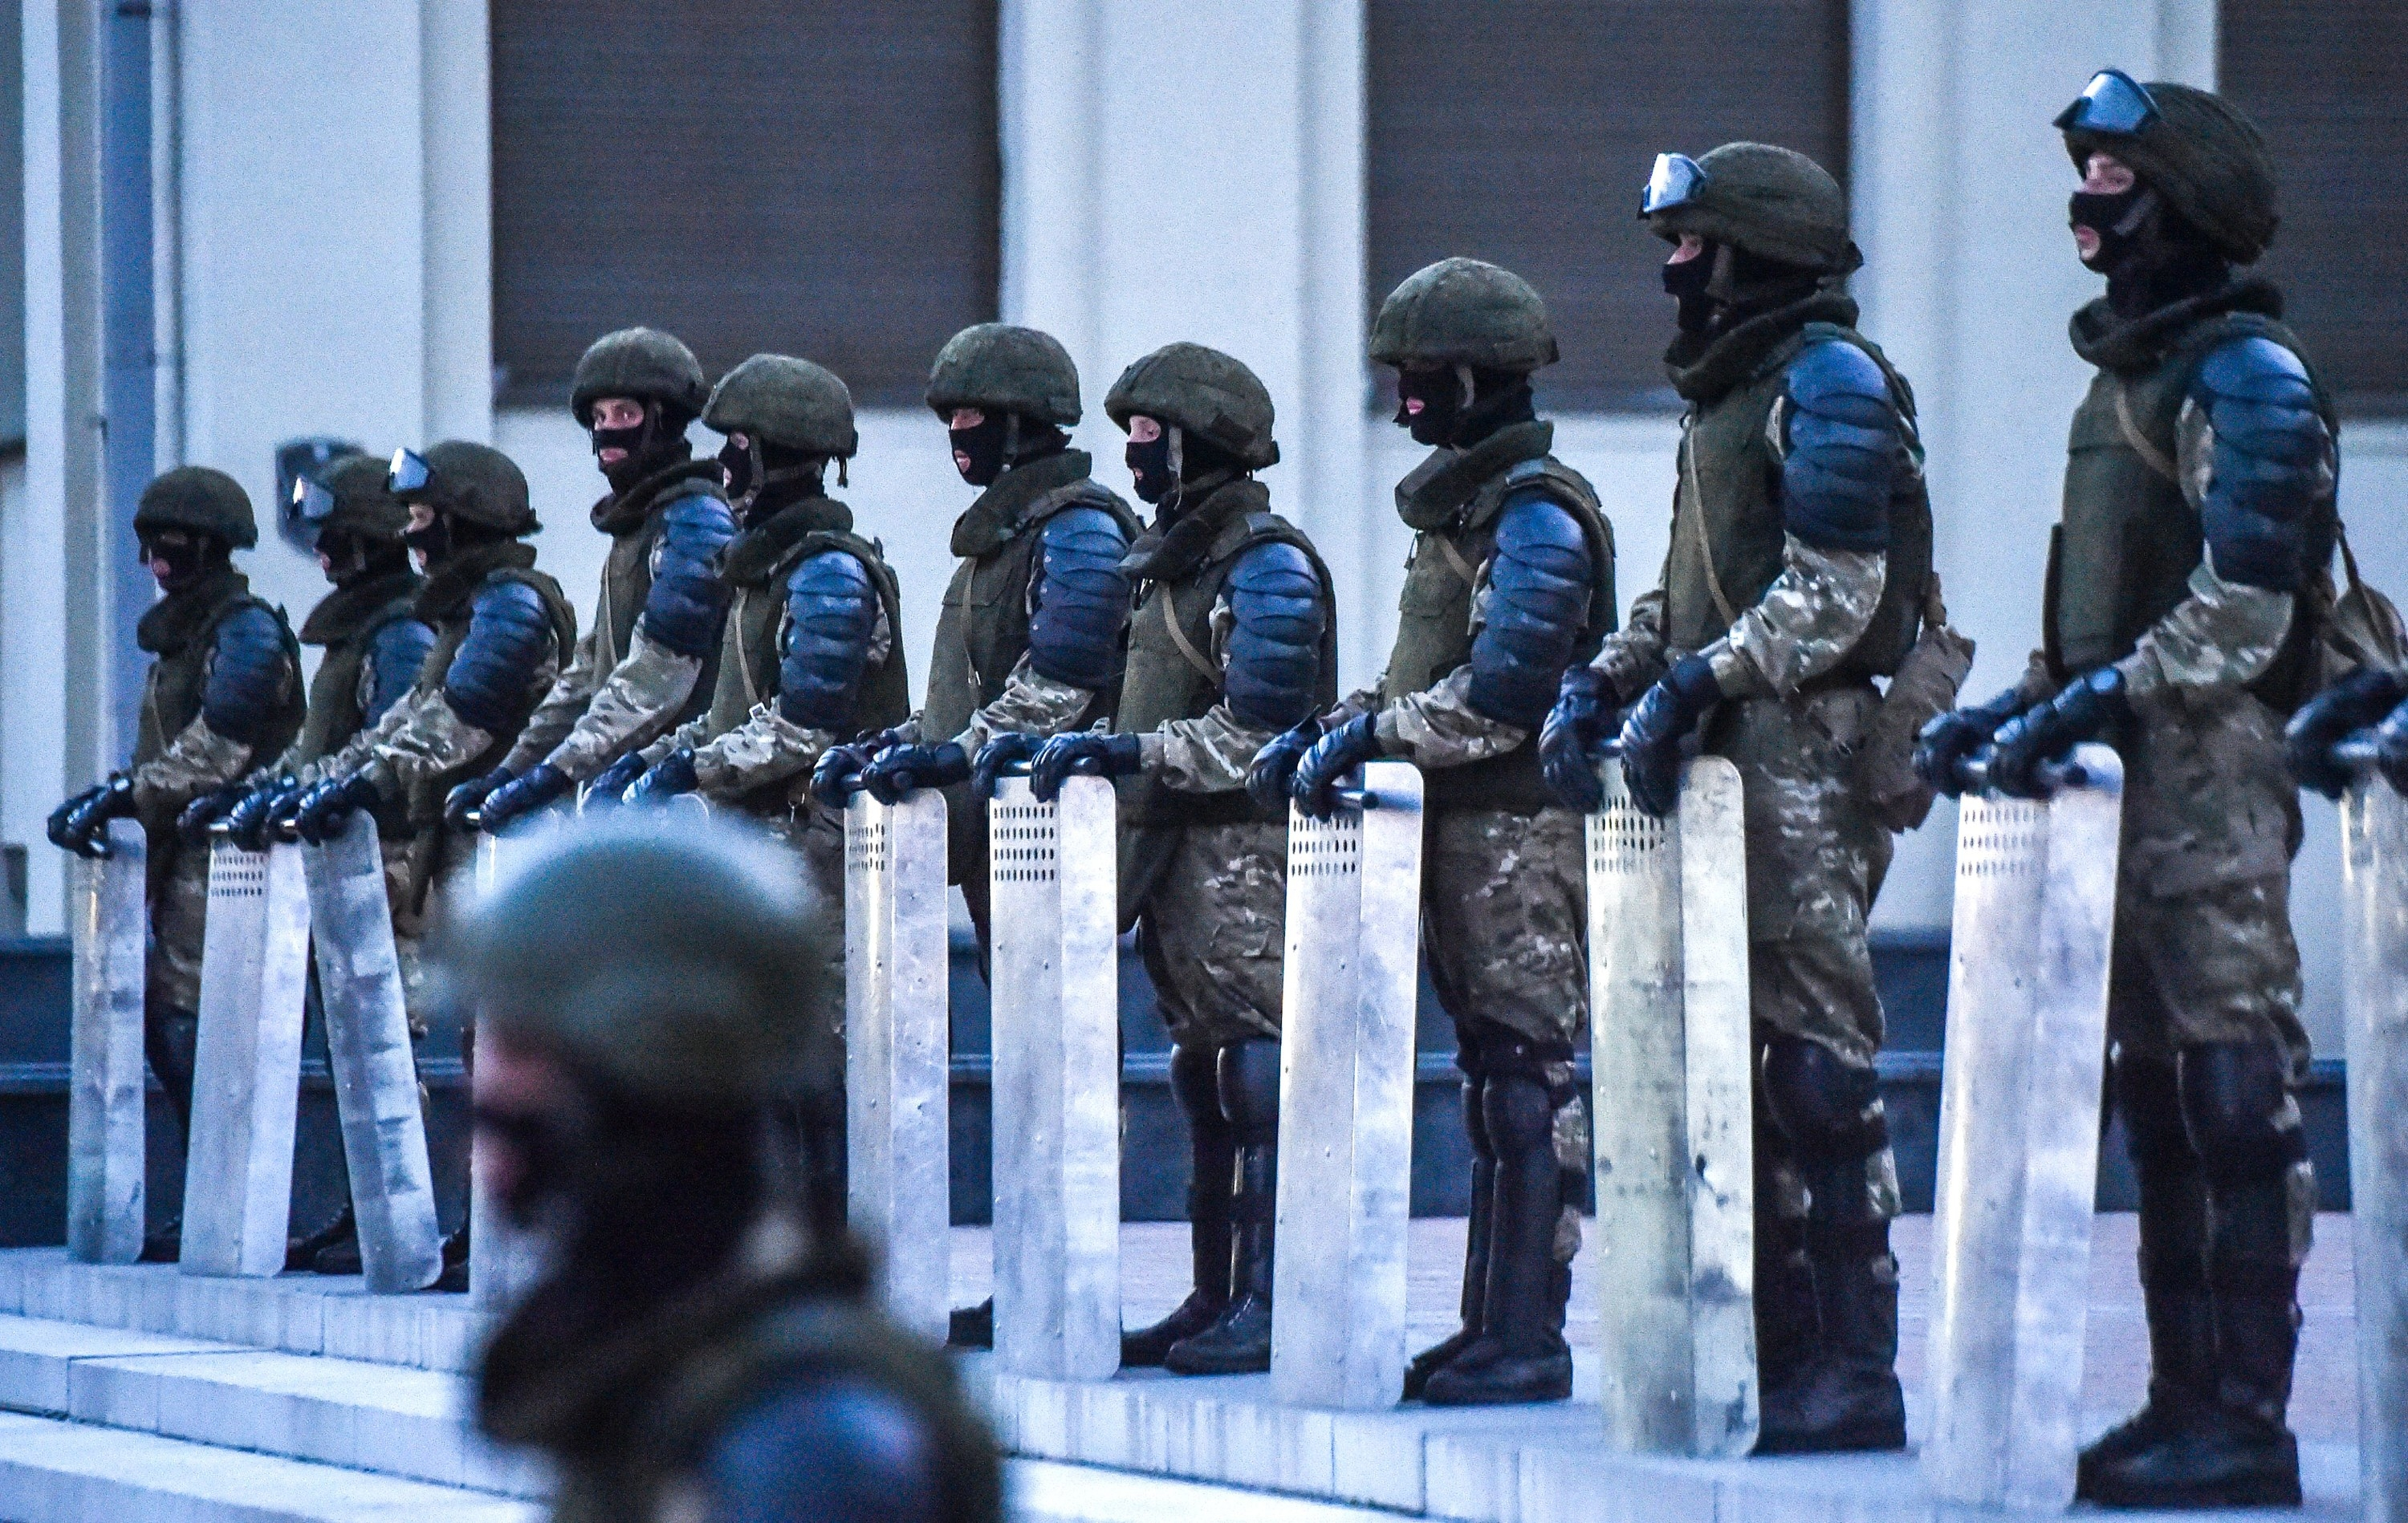 Ten officers in military gear stand in a line holding large shields